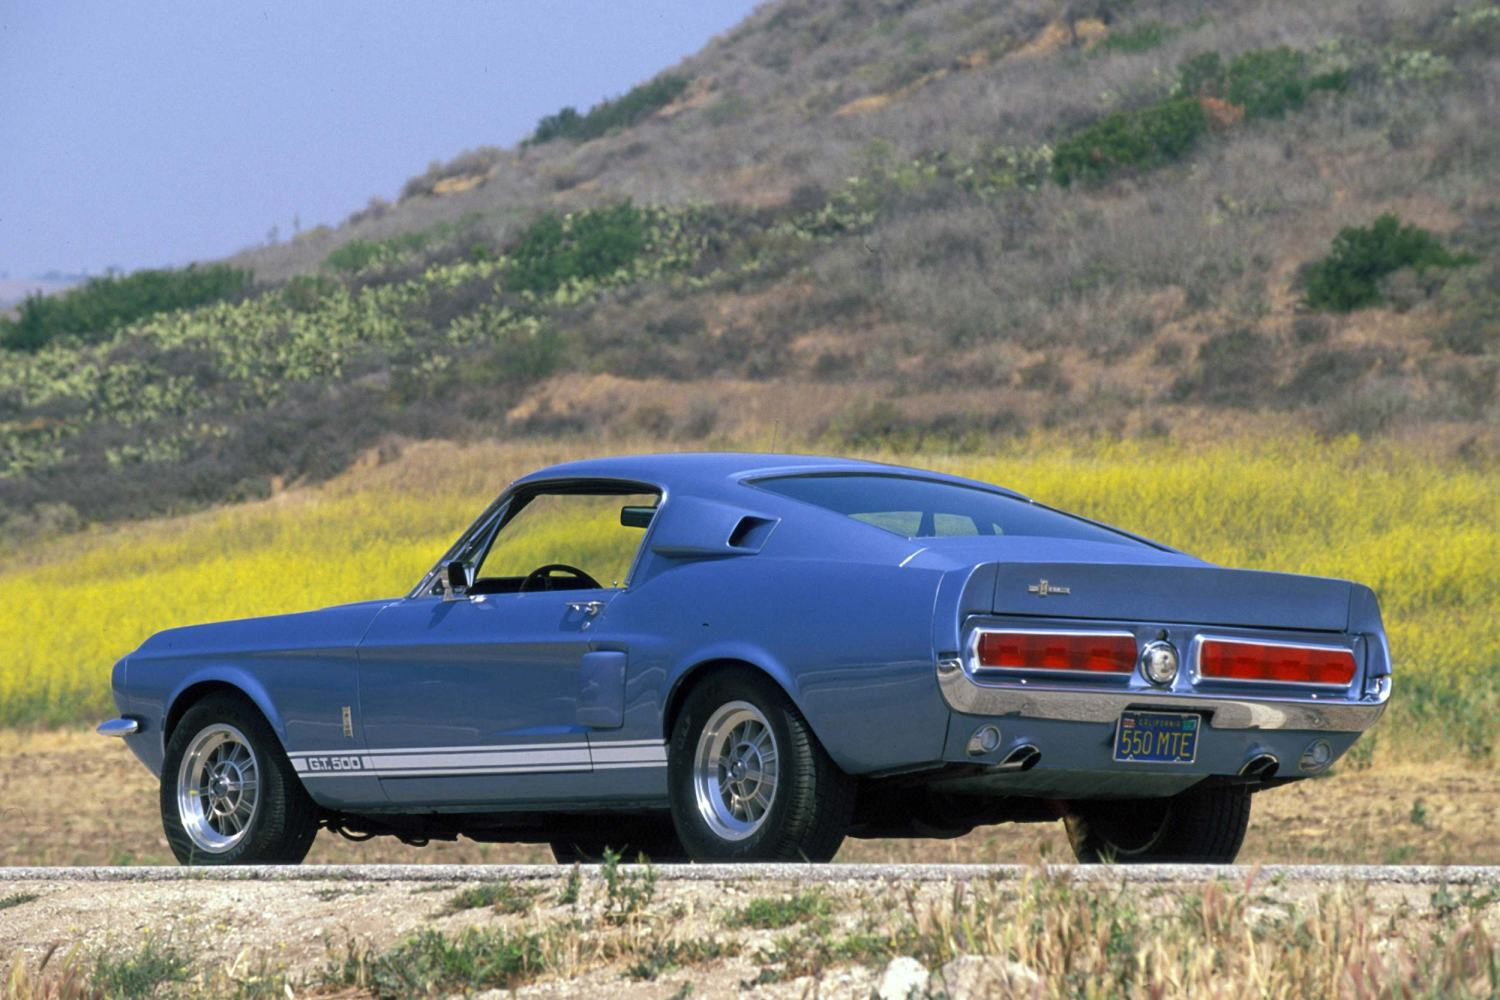 1967 Ford Shelby Mustang GT500 rear